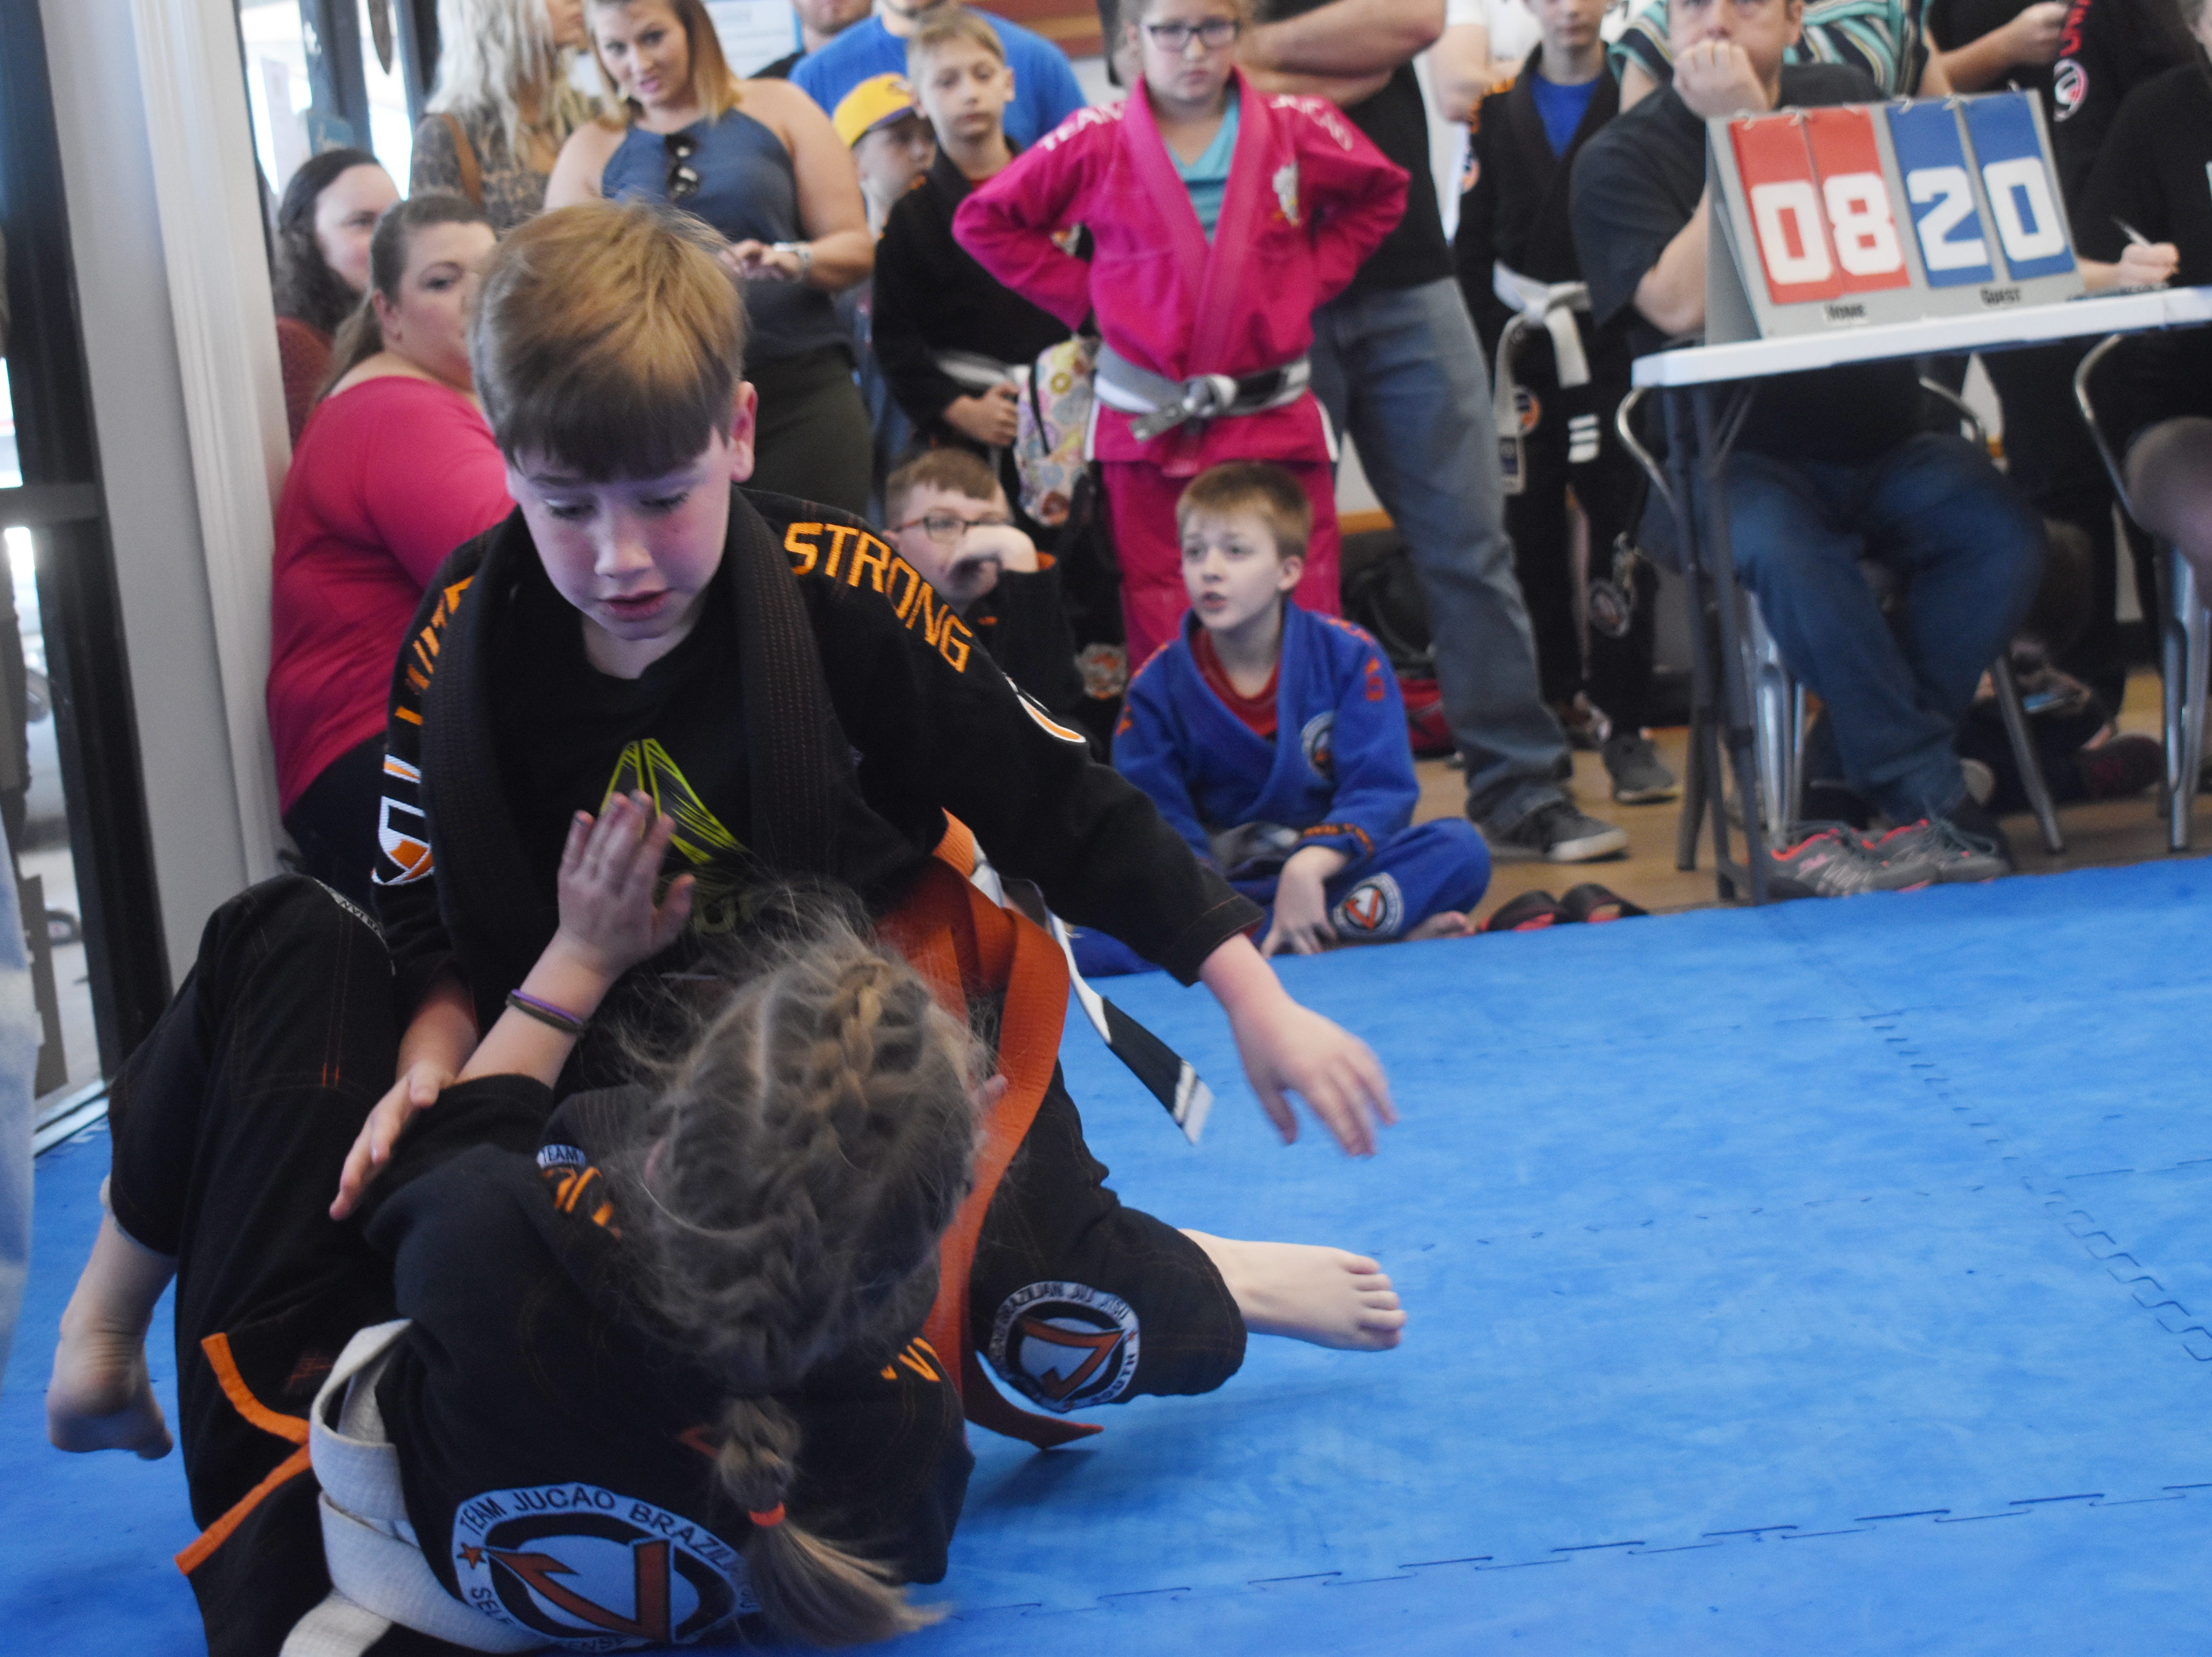 Over 53 competitors ages 5-15 competed in the first inter-school youth Brazilian Jiu Jitsu Tournament to be held in Central Louisiana at the Gracie United-Team Jucao Alexandria location on Metro Drive. Team Jucão Alexandria; Gracie United - Team Jucão Red River in Ball; and and Gracie United - Team Jucão in Leesville were represented.